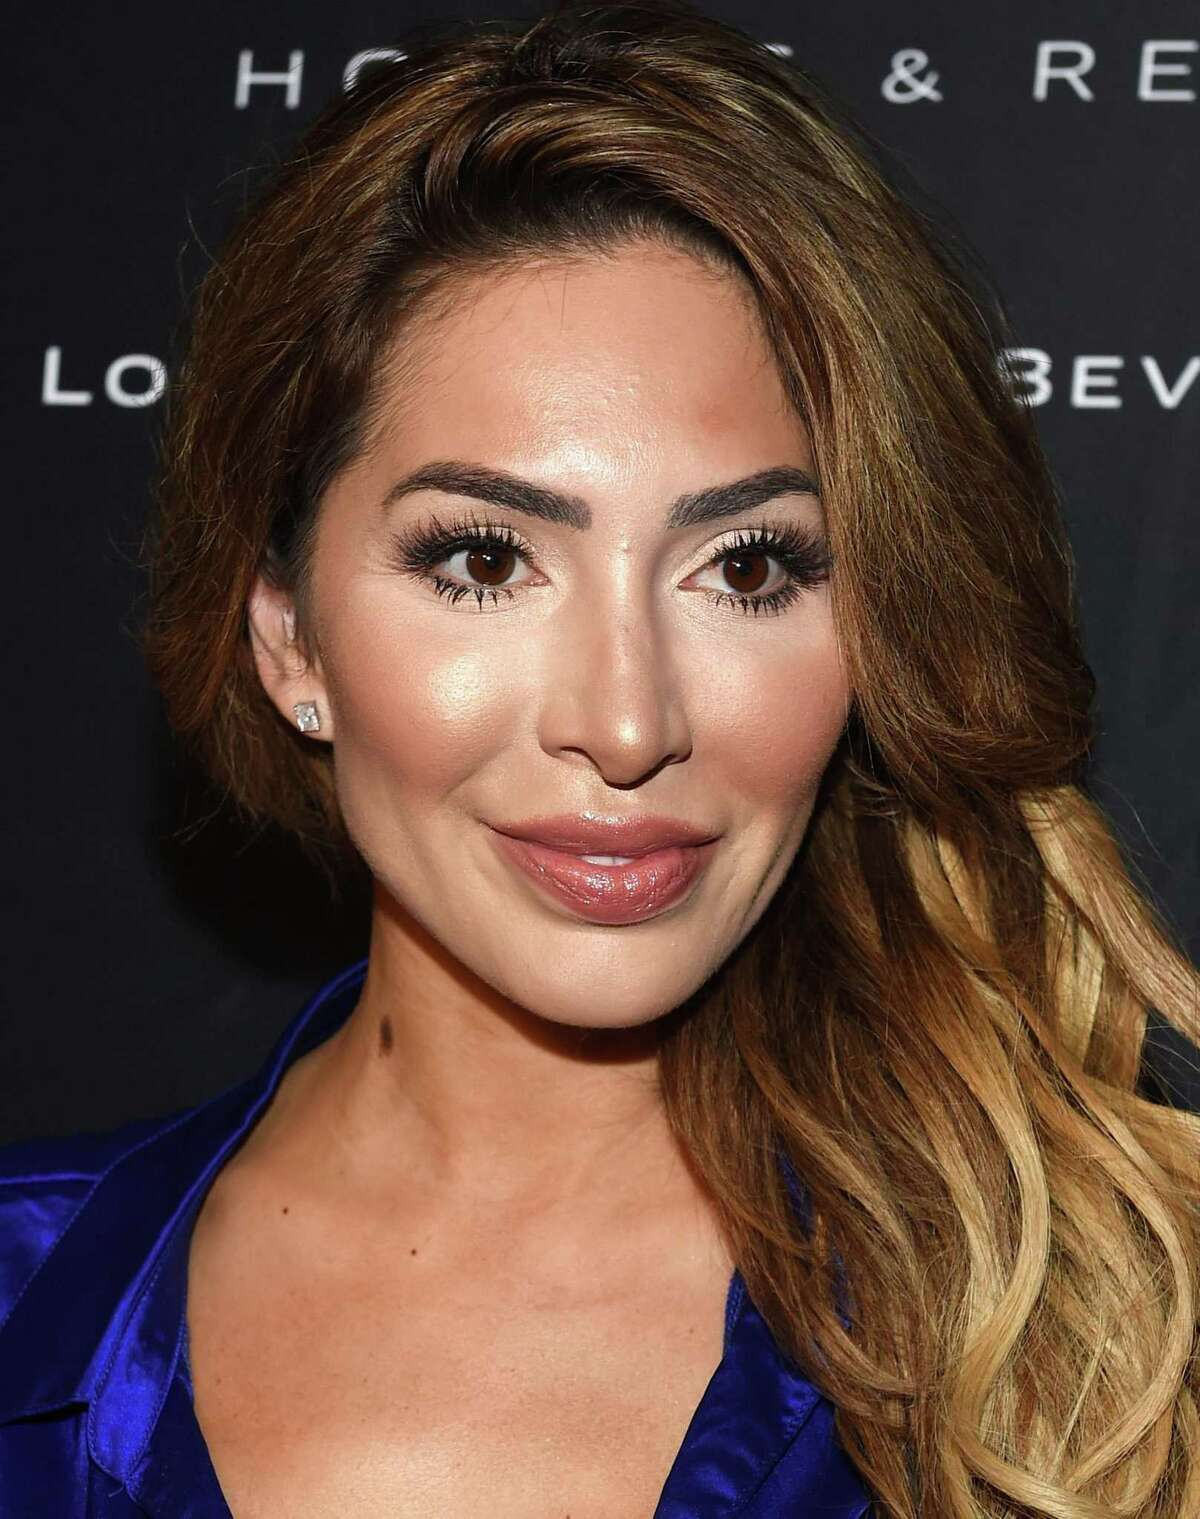 Television personality Farrah Abraham has accused Foppoli of sexual assault.